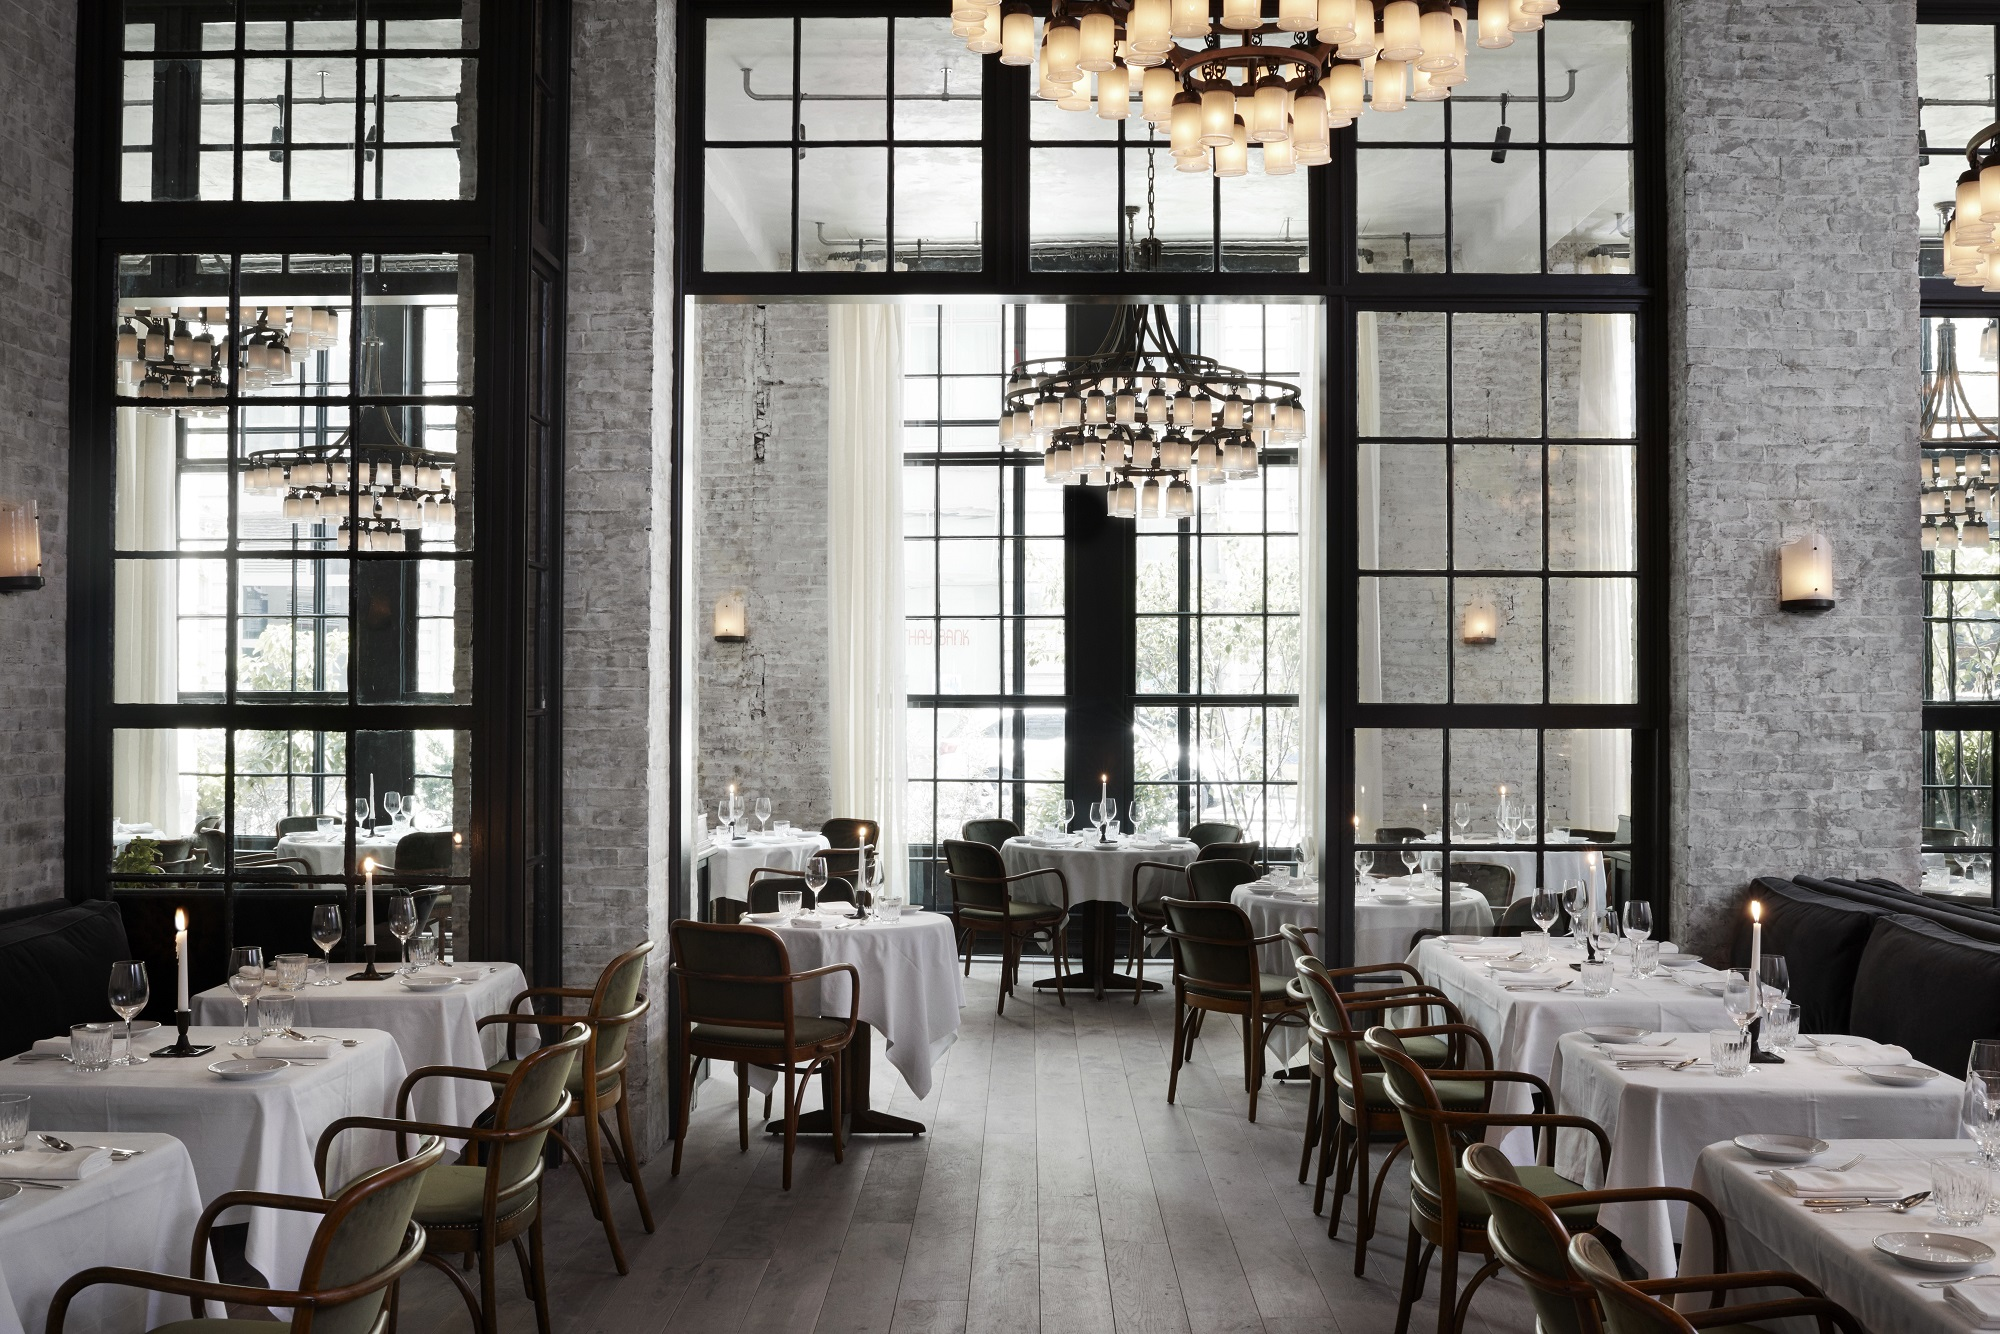 Take a look at Roman & Williams – Designed Le Coucou Restaurant restaurants for valentine's day The Most Romantic Restaurants for Valentine's Day Roman Williams 1 restaurants for valentine's day The Most Romantic Restaurants for Valentine's Day Roman Williams 1